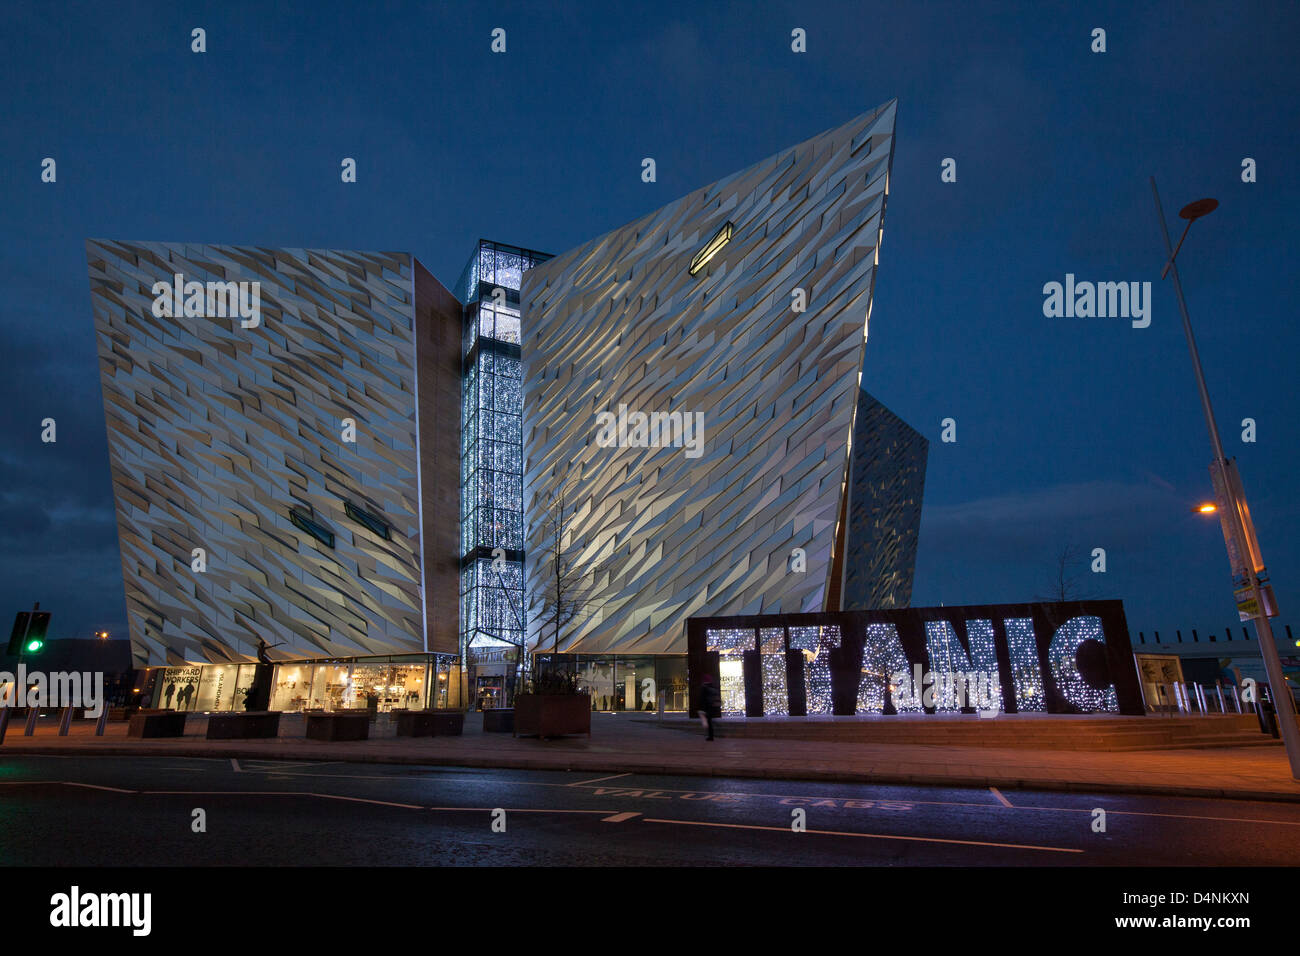 An evening view of the Titanic museum in Belfast. - Stock Image